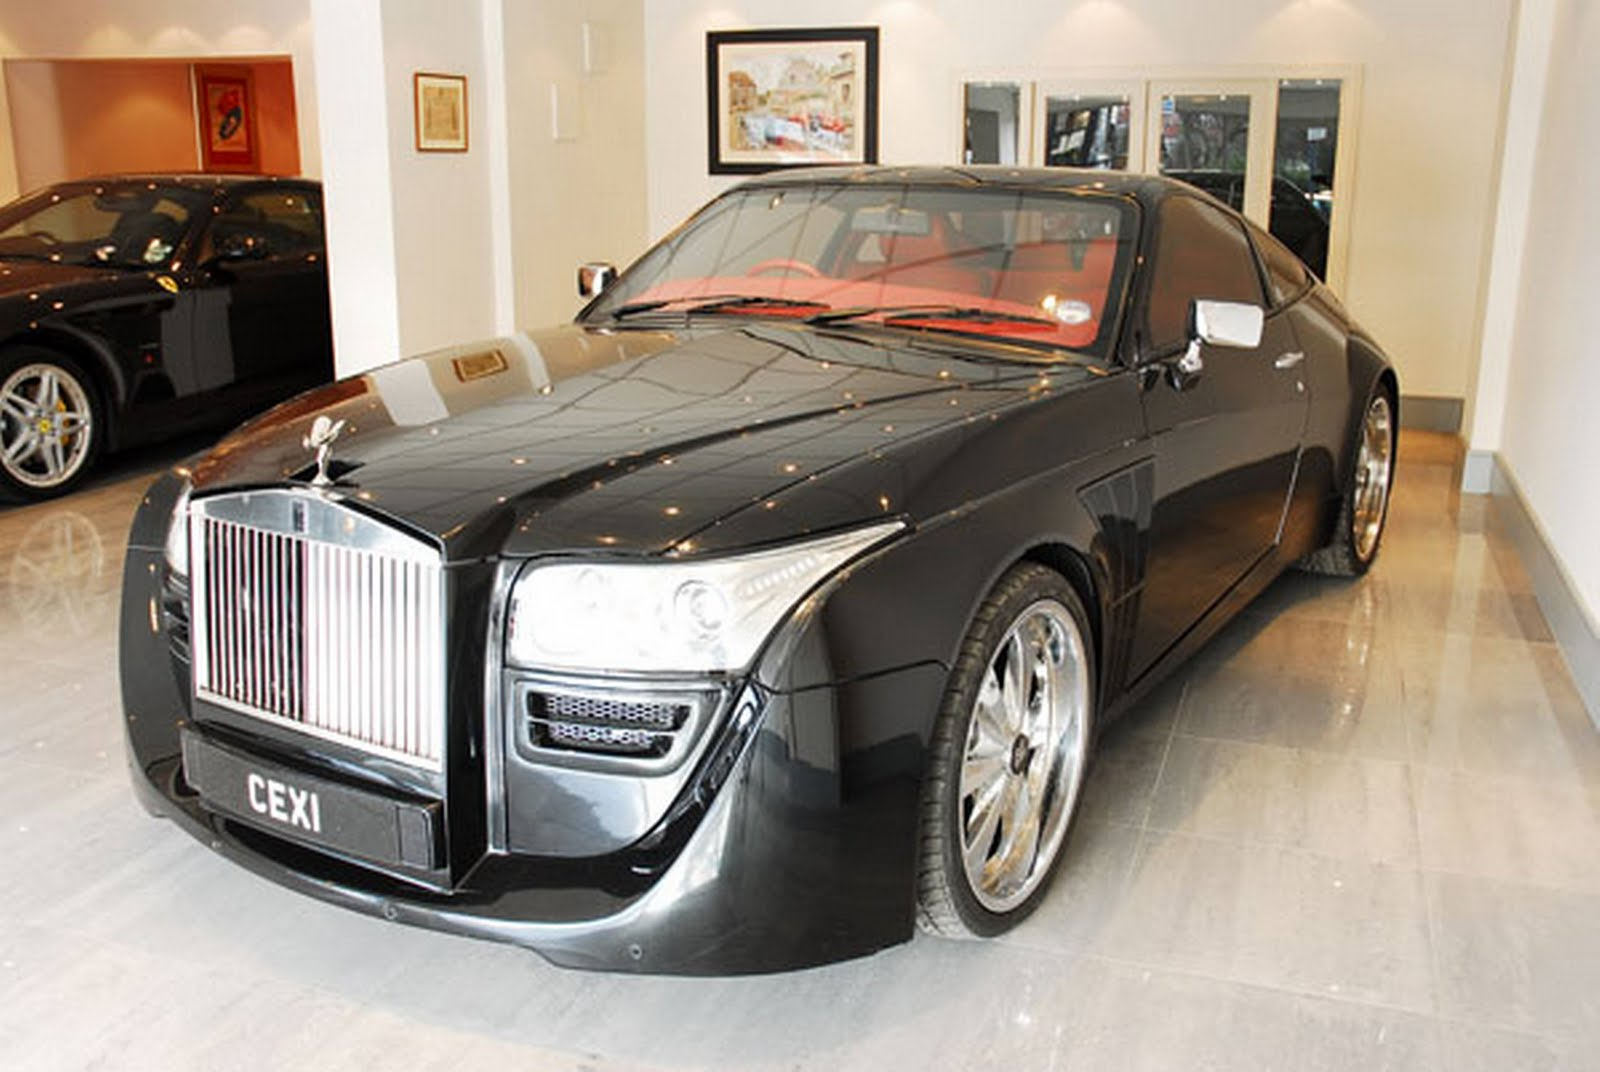 Modified Rolls Royce Phantom Concept